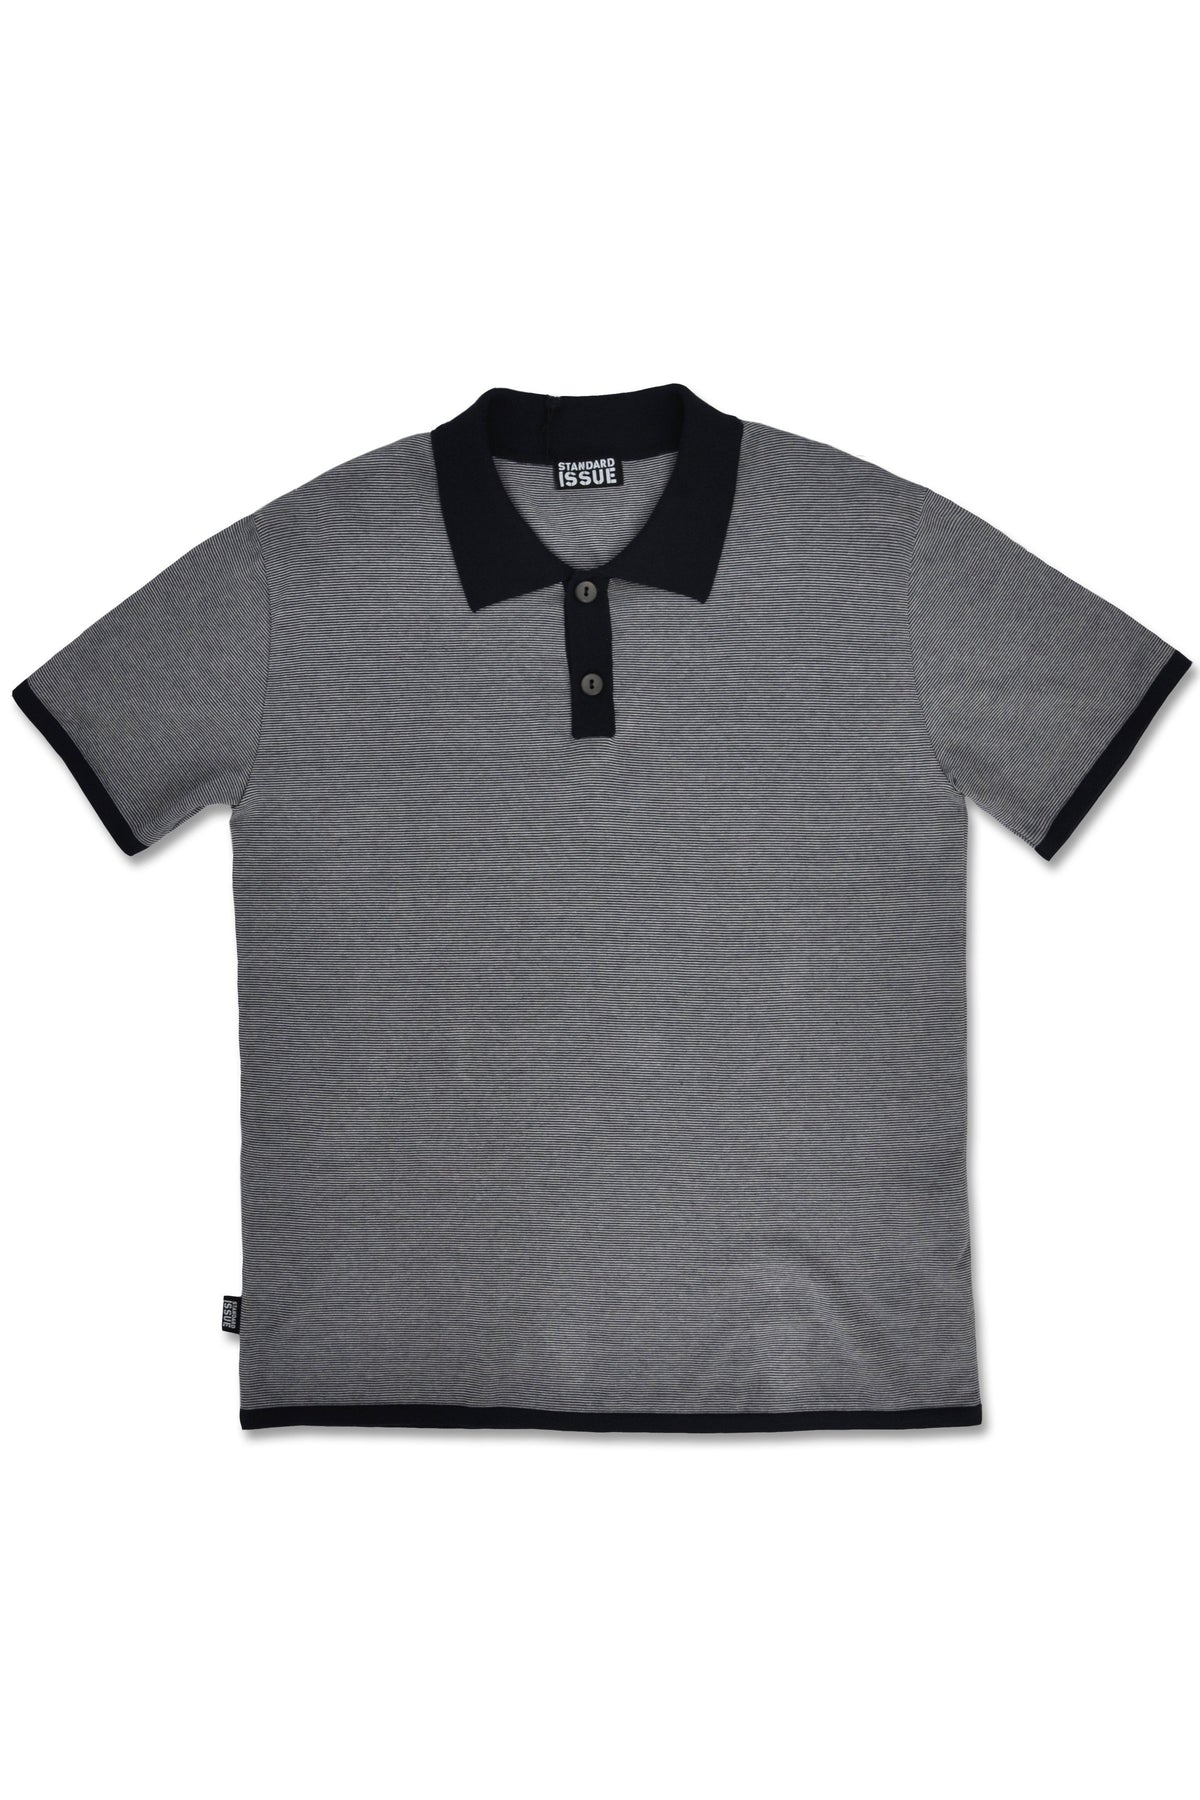 Standard Issue micro stripe polo mens Stockists Auckland Made in New Zealand NZ Designer Clothing